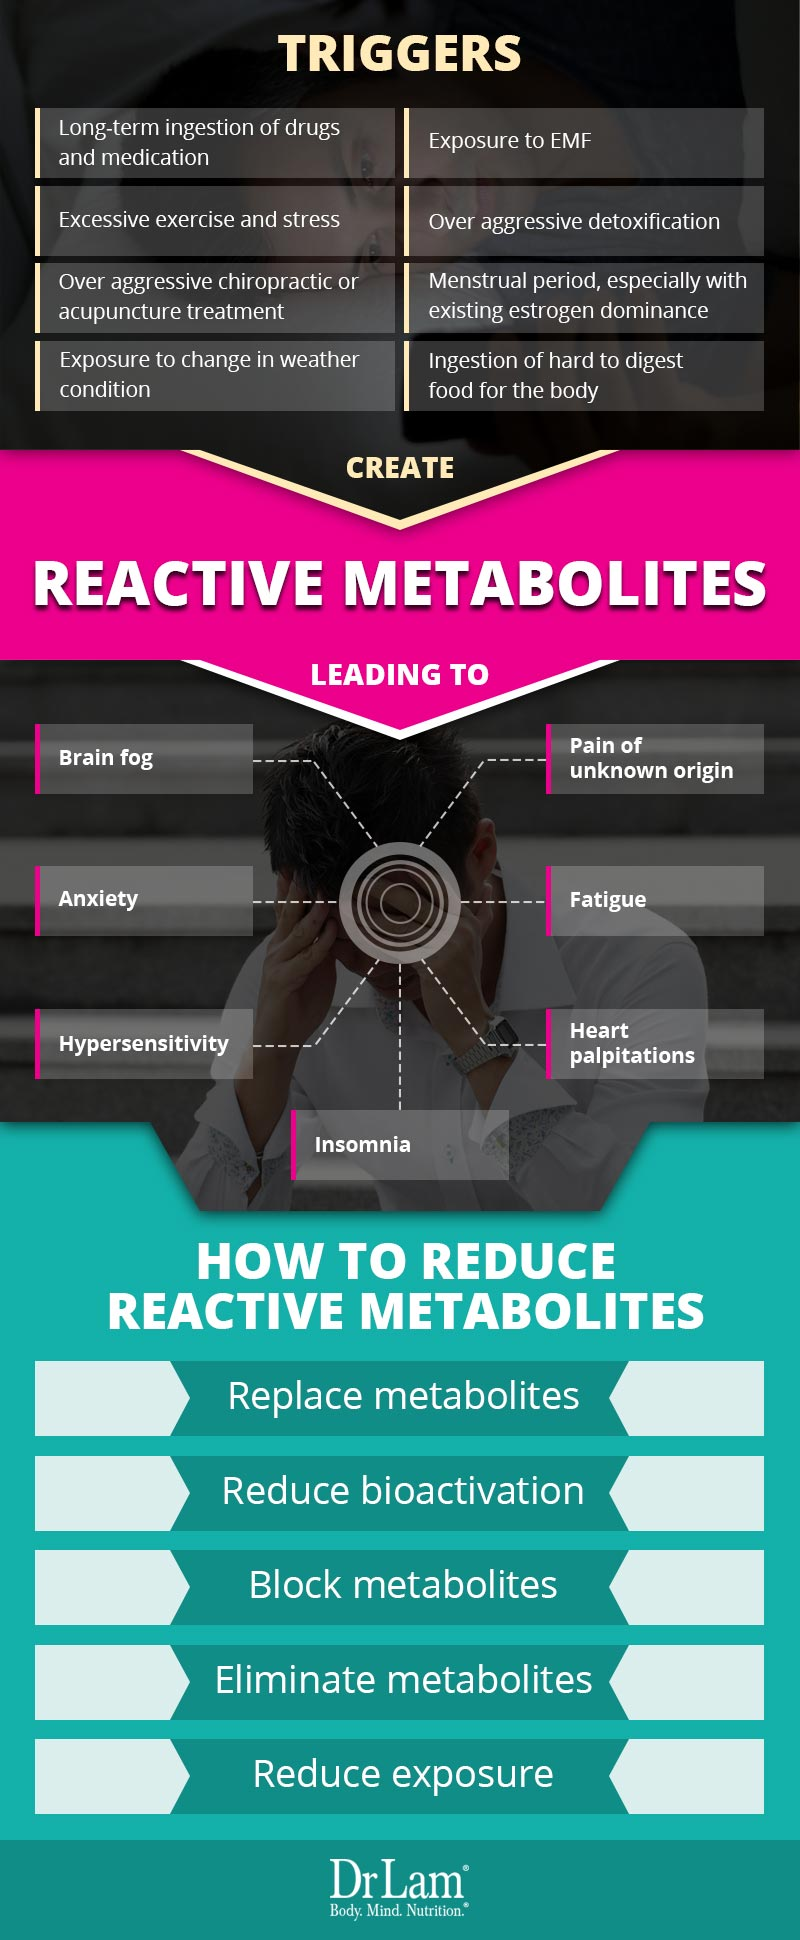 Check out this easy to understand infographic about reactive metabolites, the triggers, and how to reduce them.